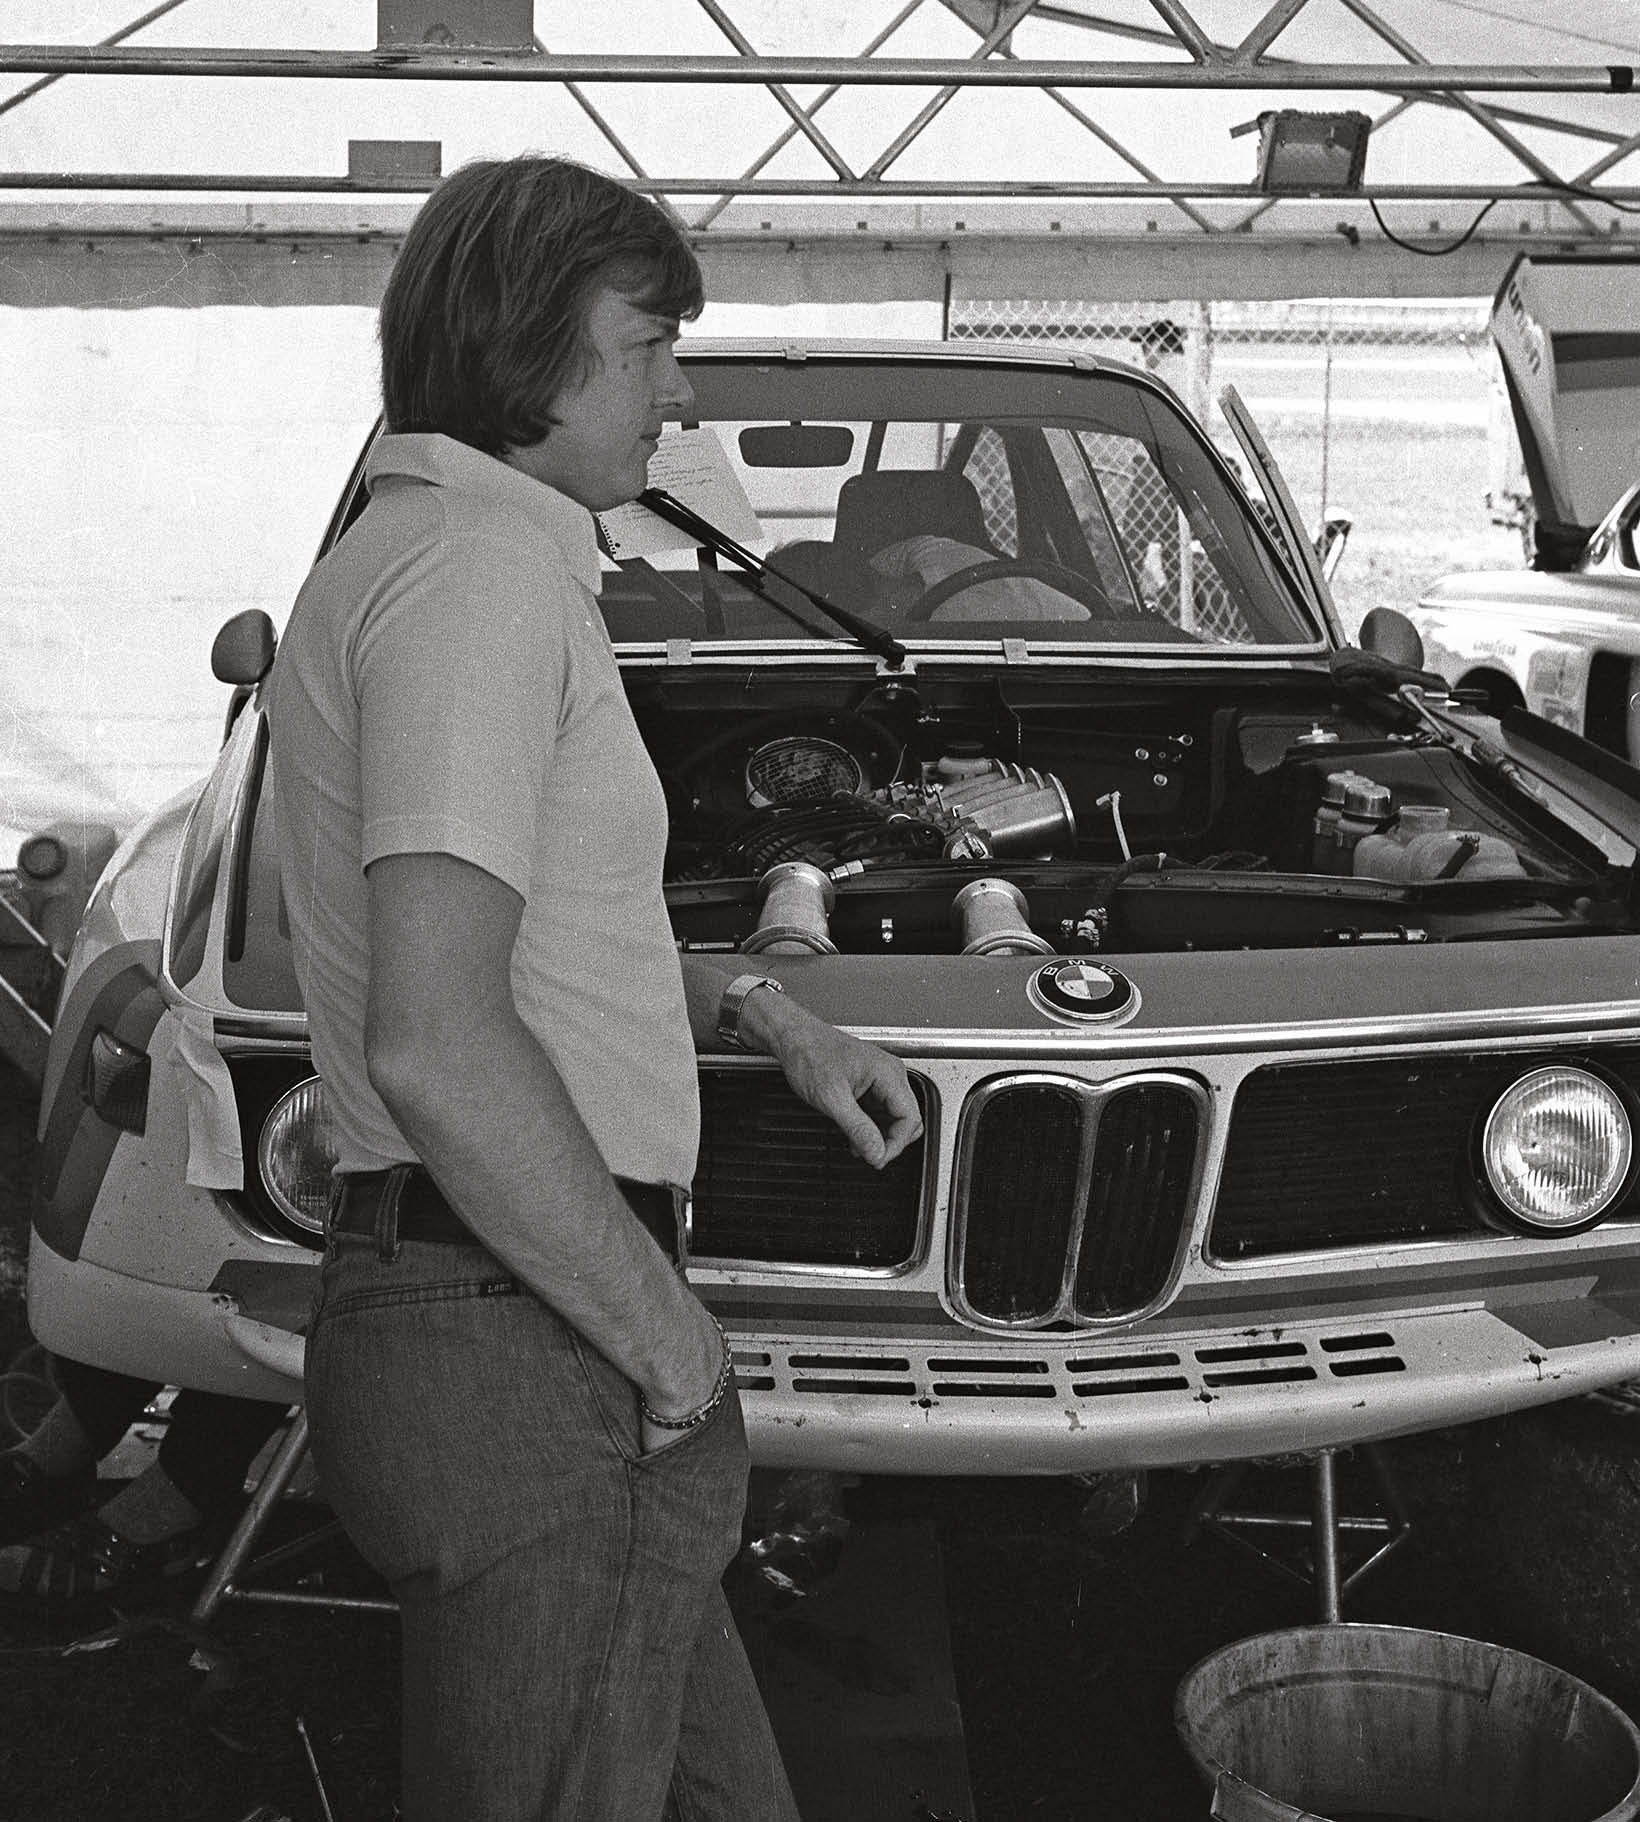 Ronnie Peterson with the BMW 3.0 CSL he shared with Redman at Daytona in '75